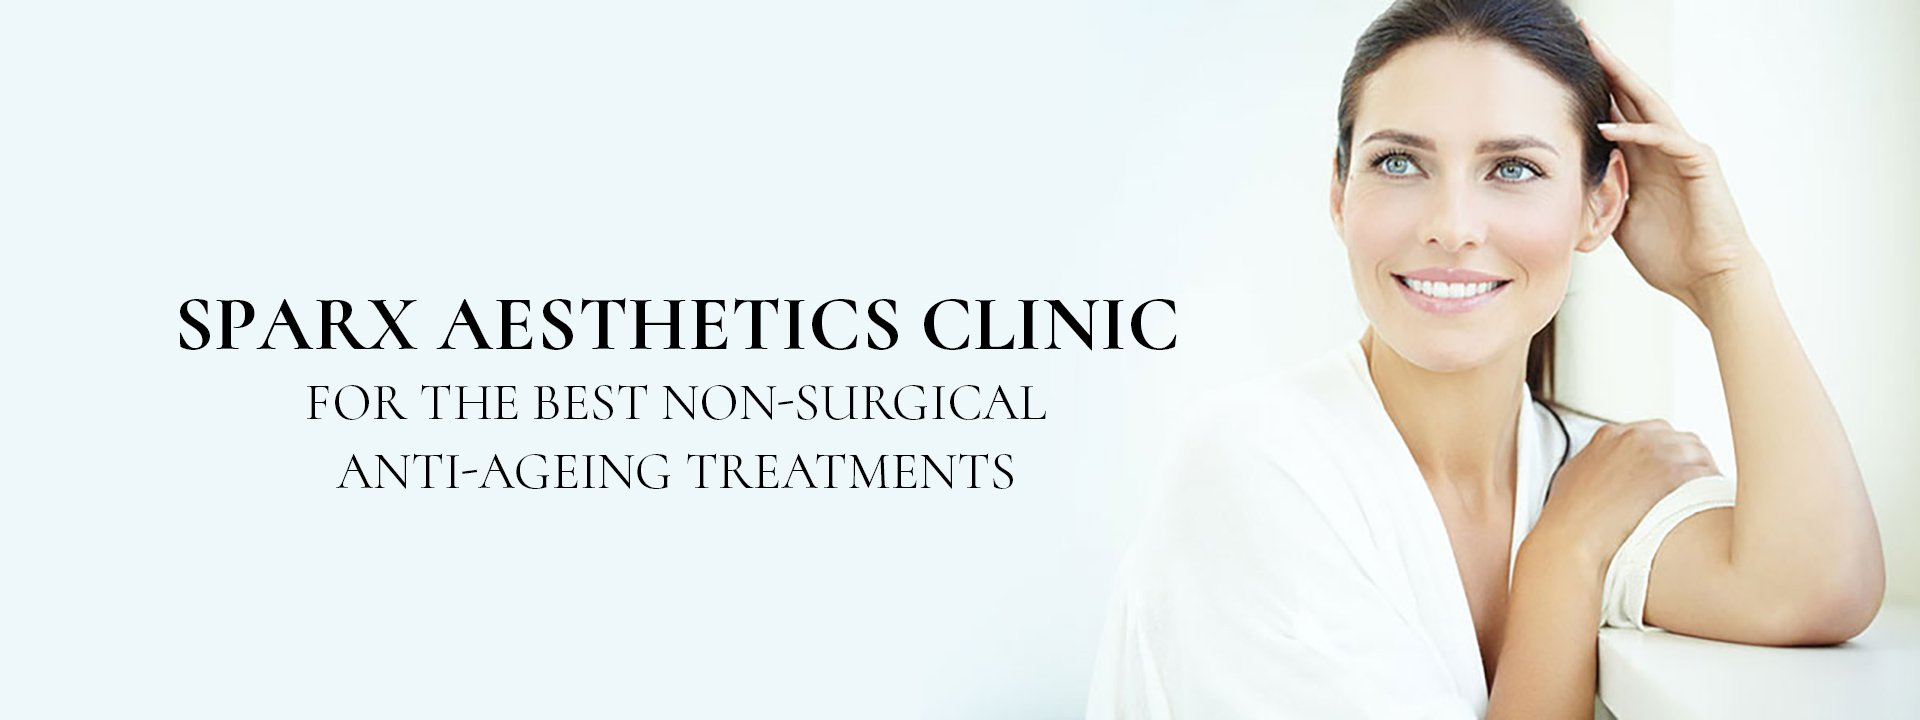 Sparx Winchester Aesthetics Clinic for the Best Non-Surgical Anti-Aging Treatments